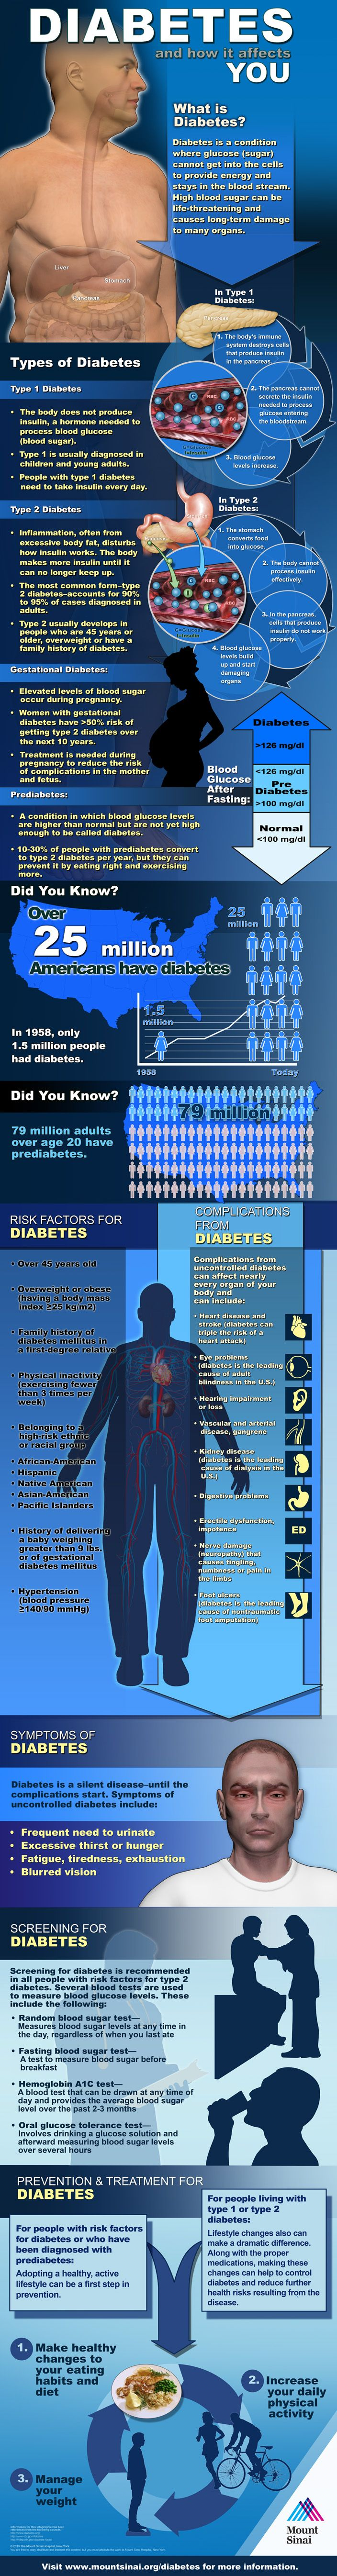 Learn more about diabetes and how it affects different people at different times.